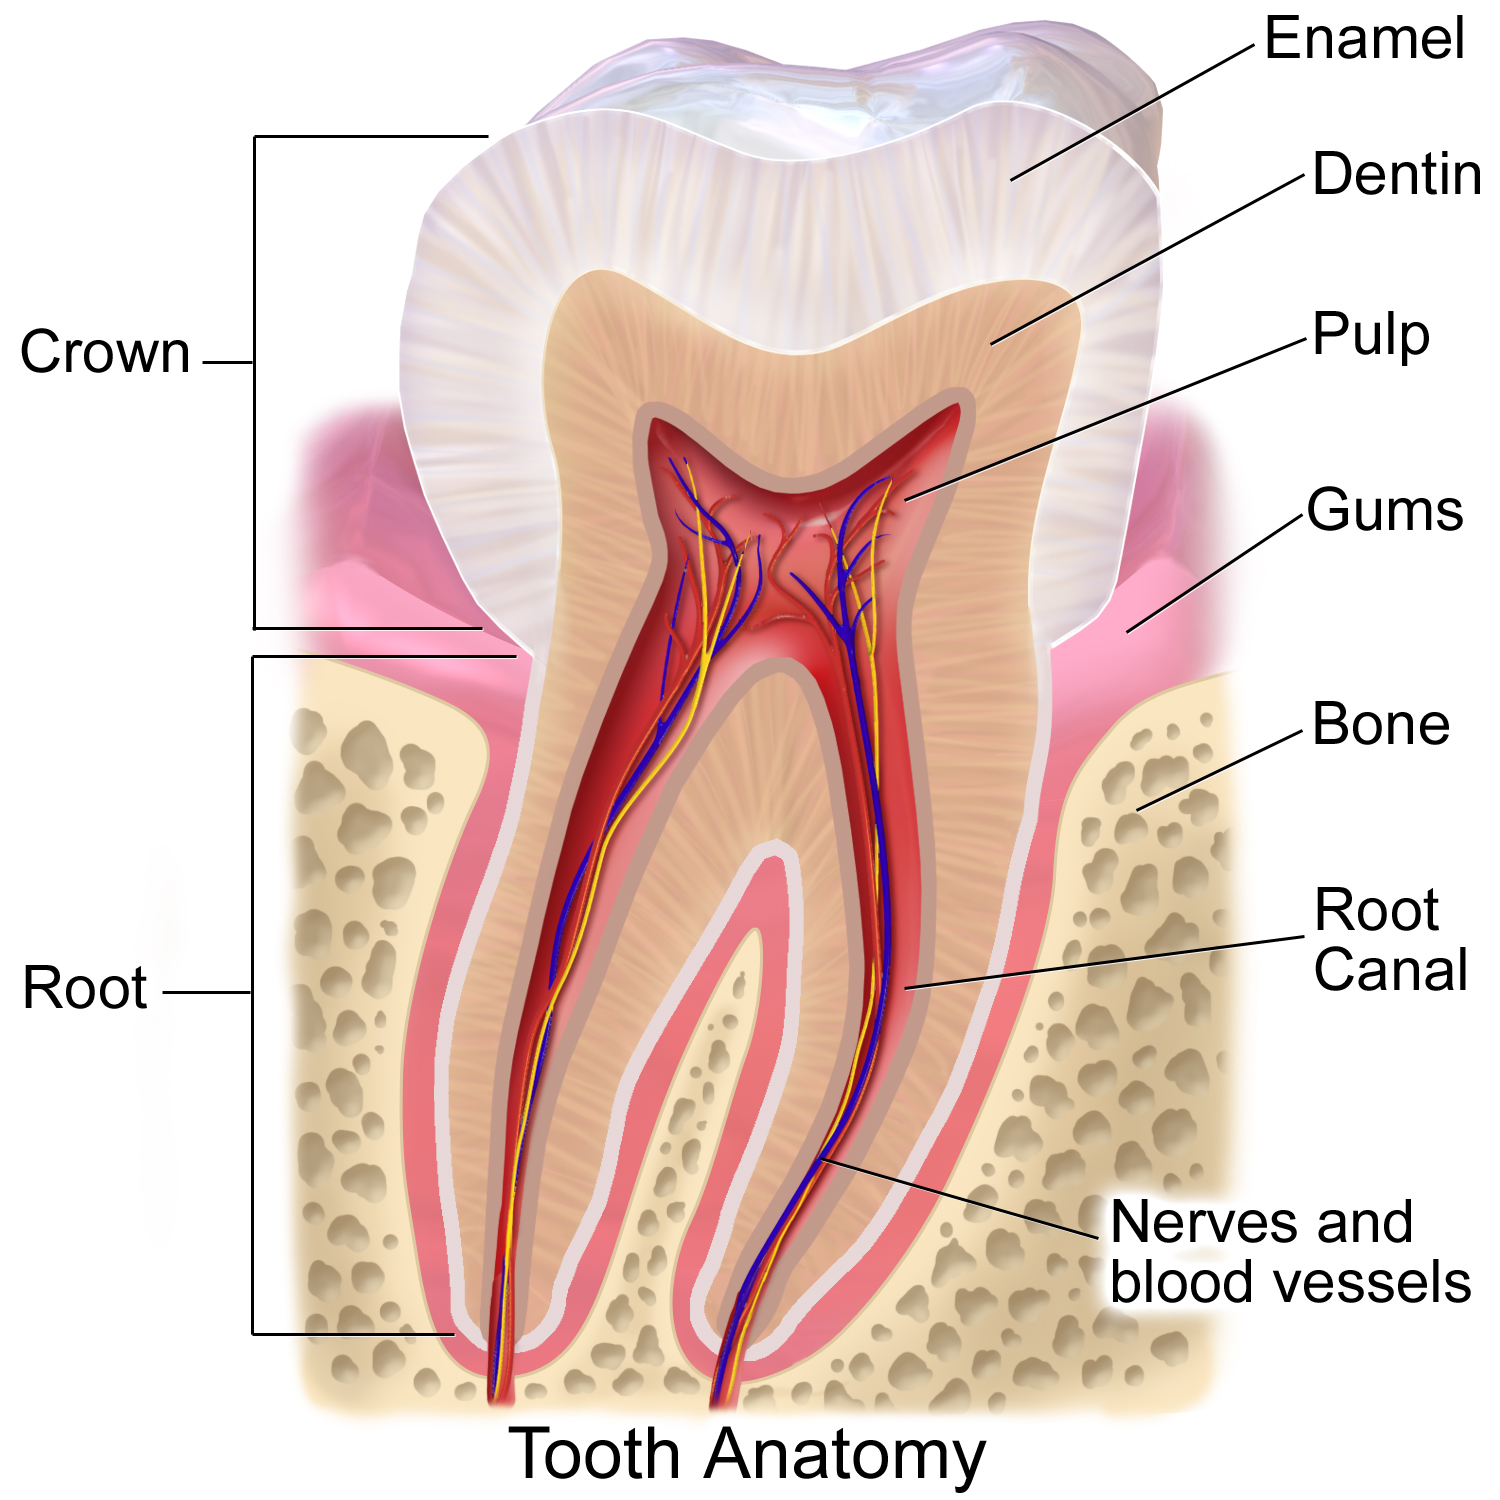 Anatomy of the Tooth | Dentist in Gainesville GA